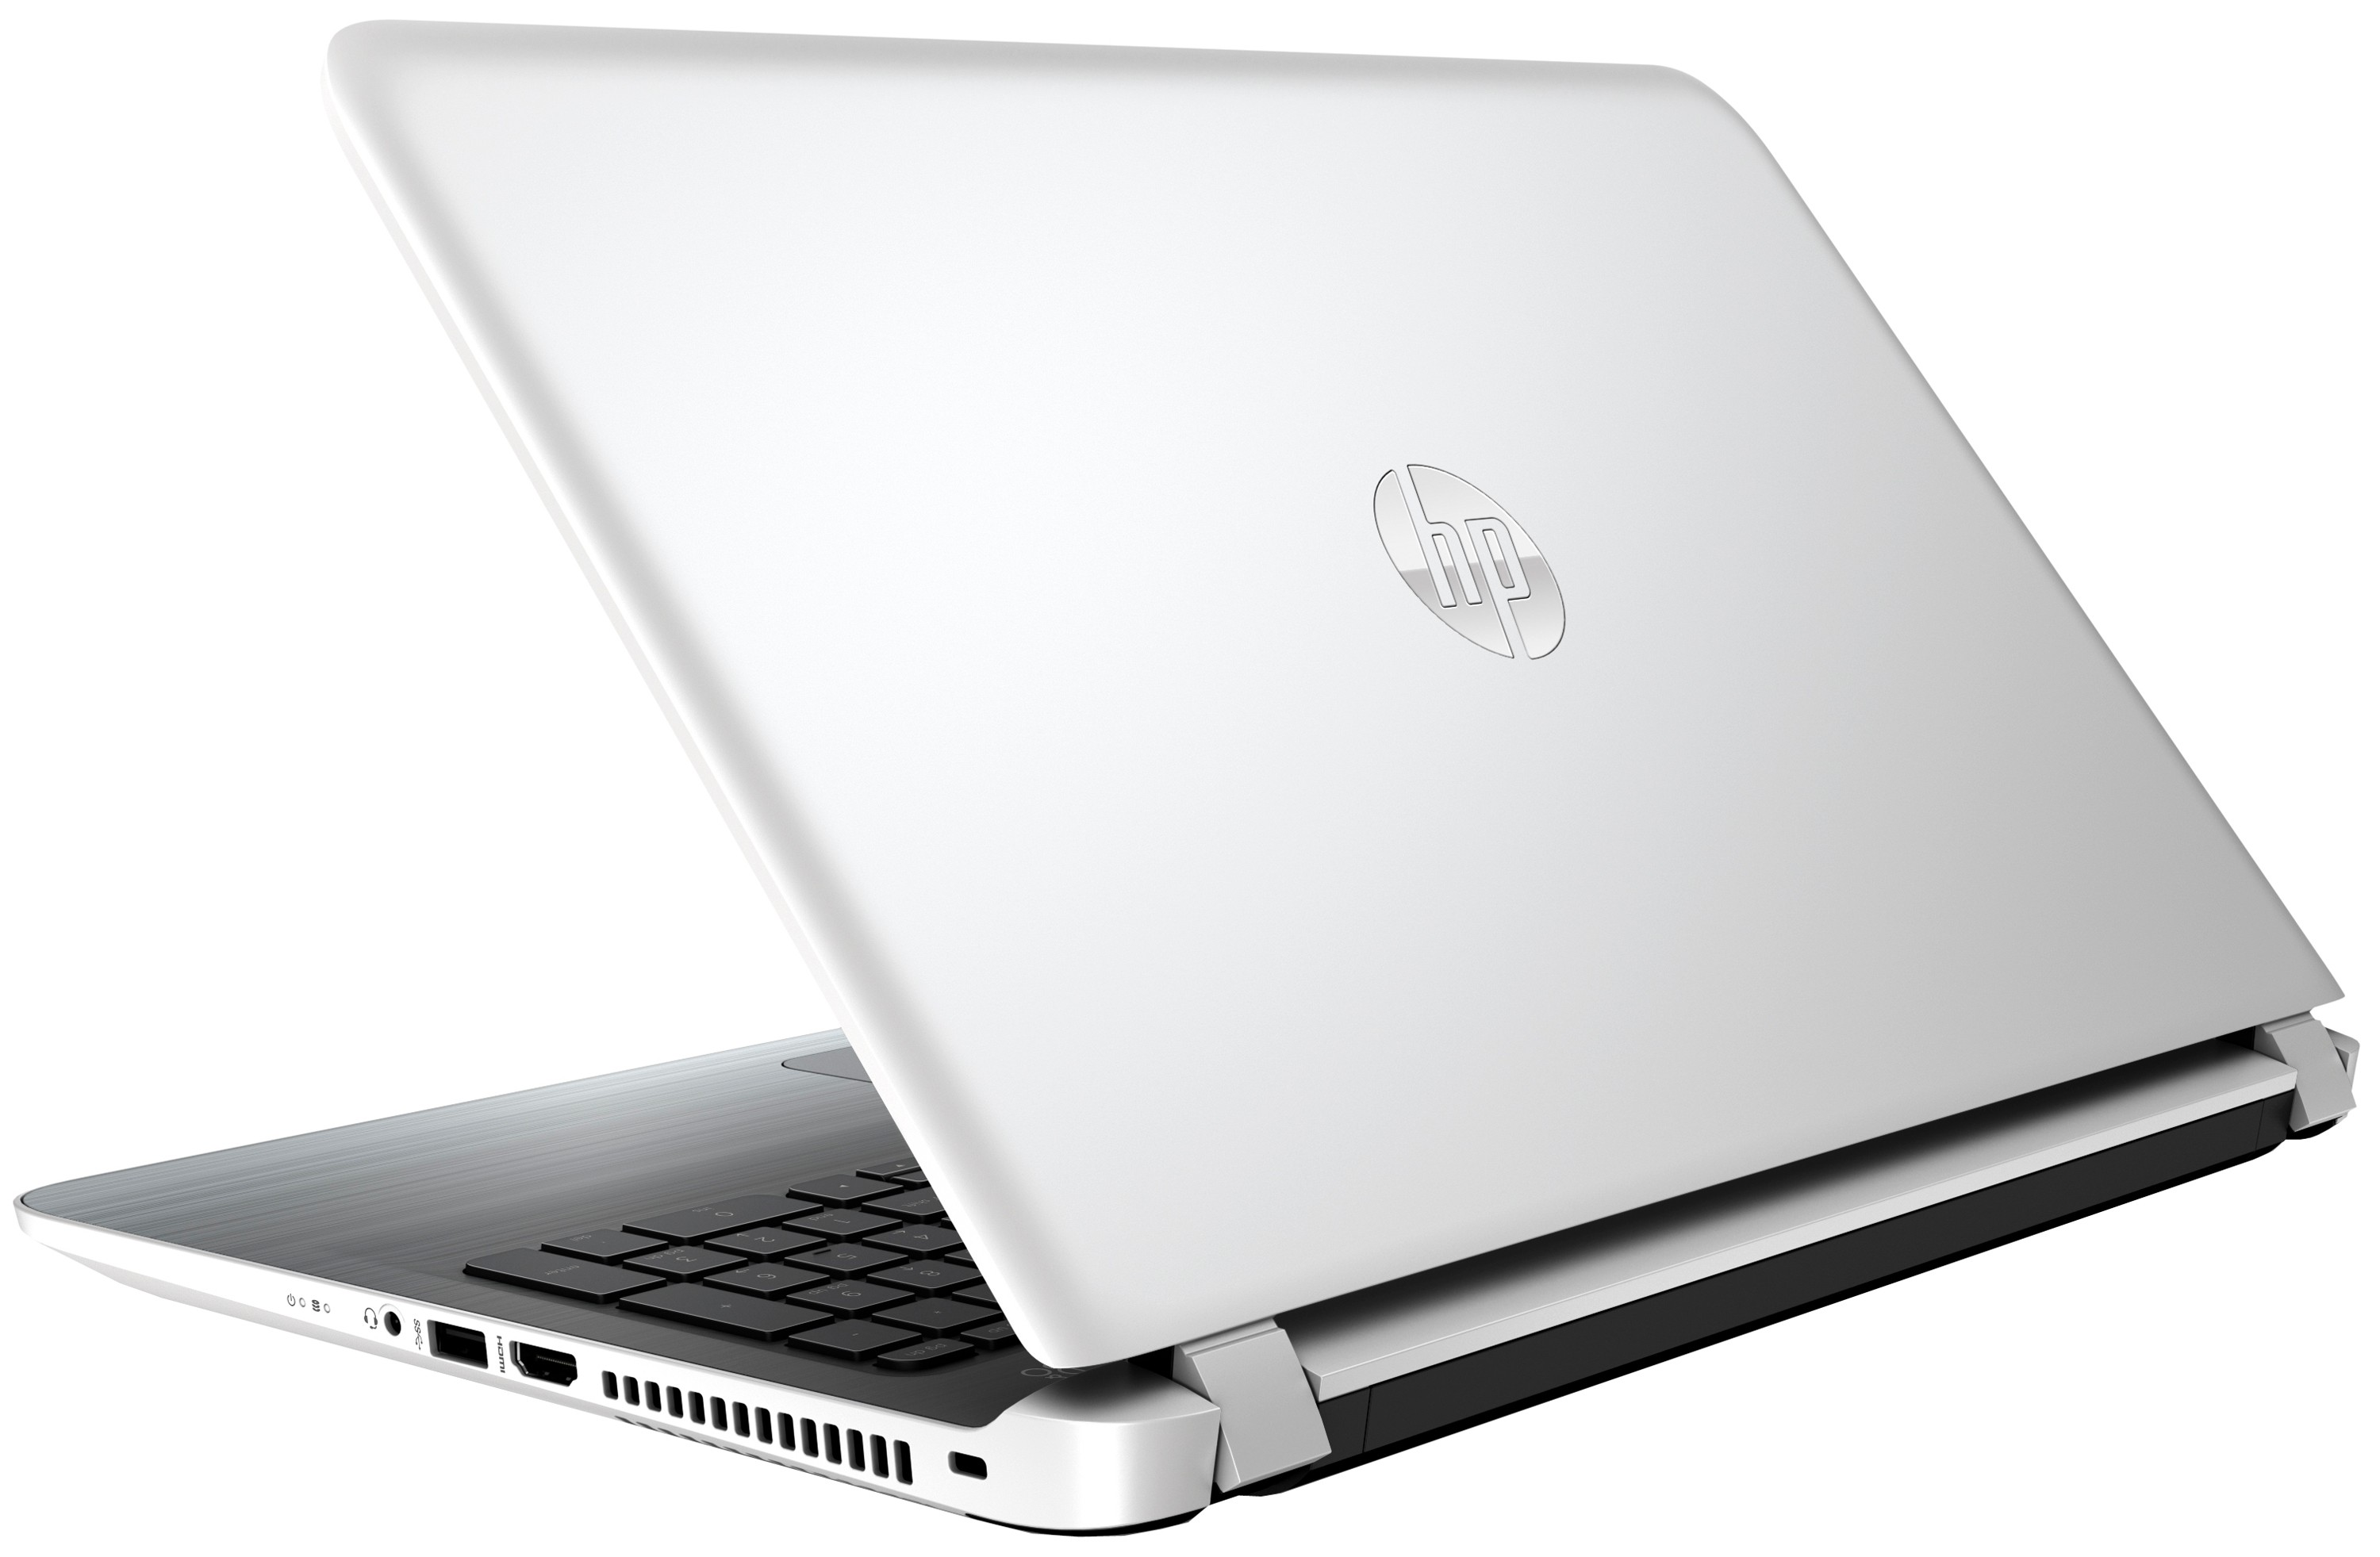 Hp dv9205us